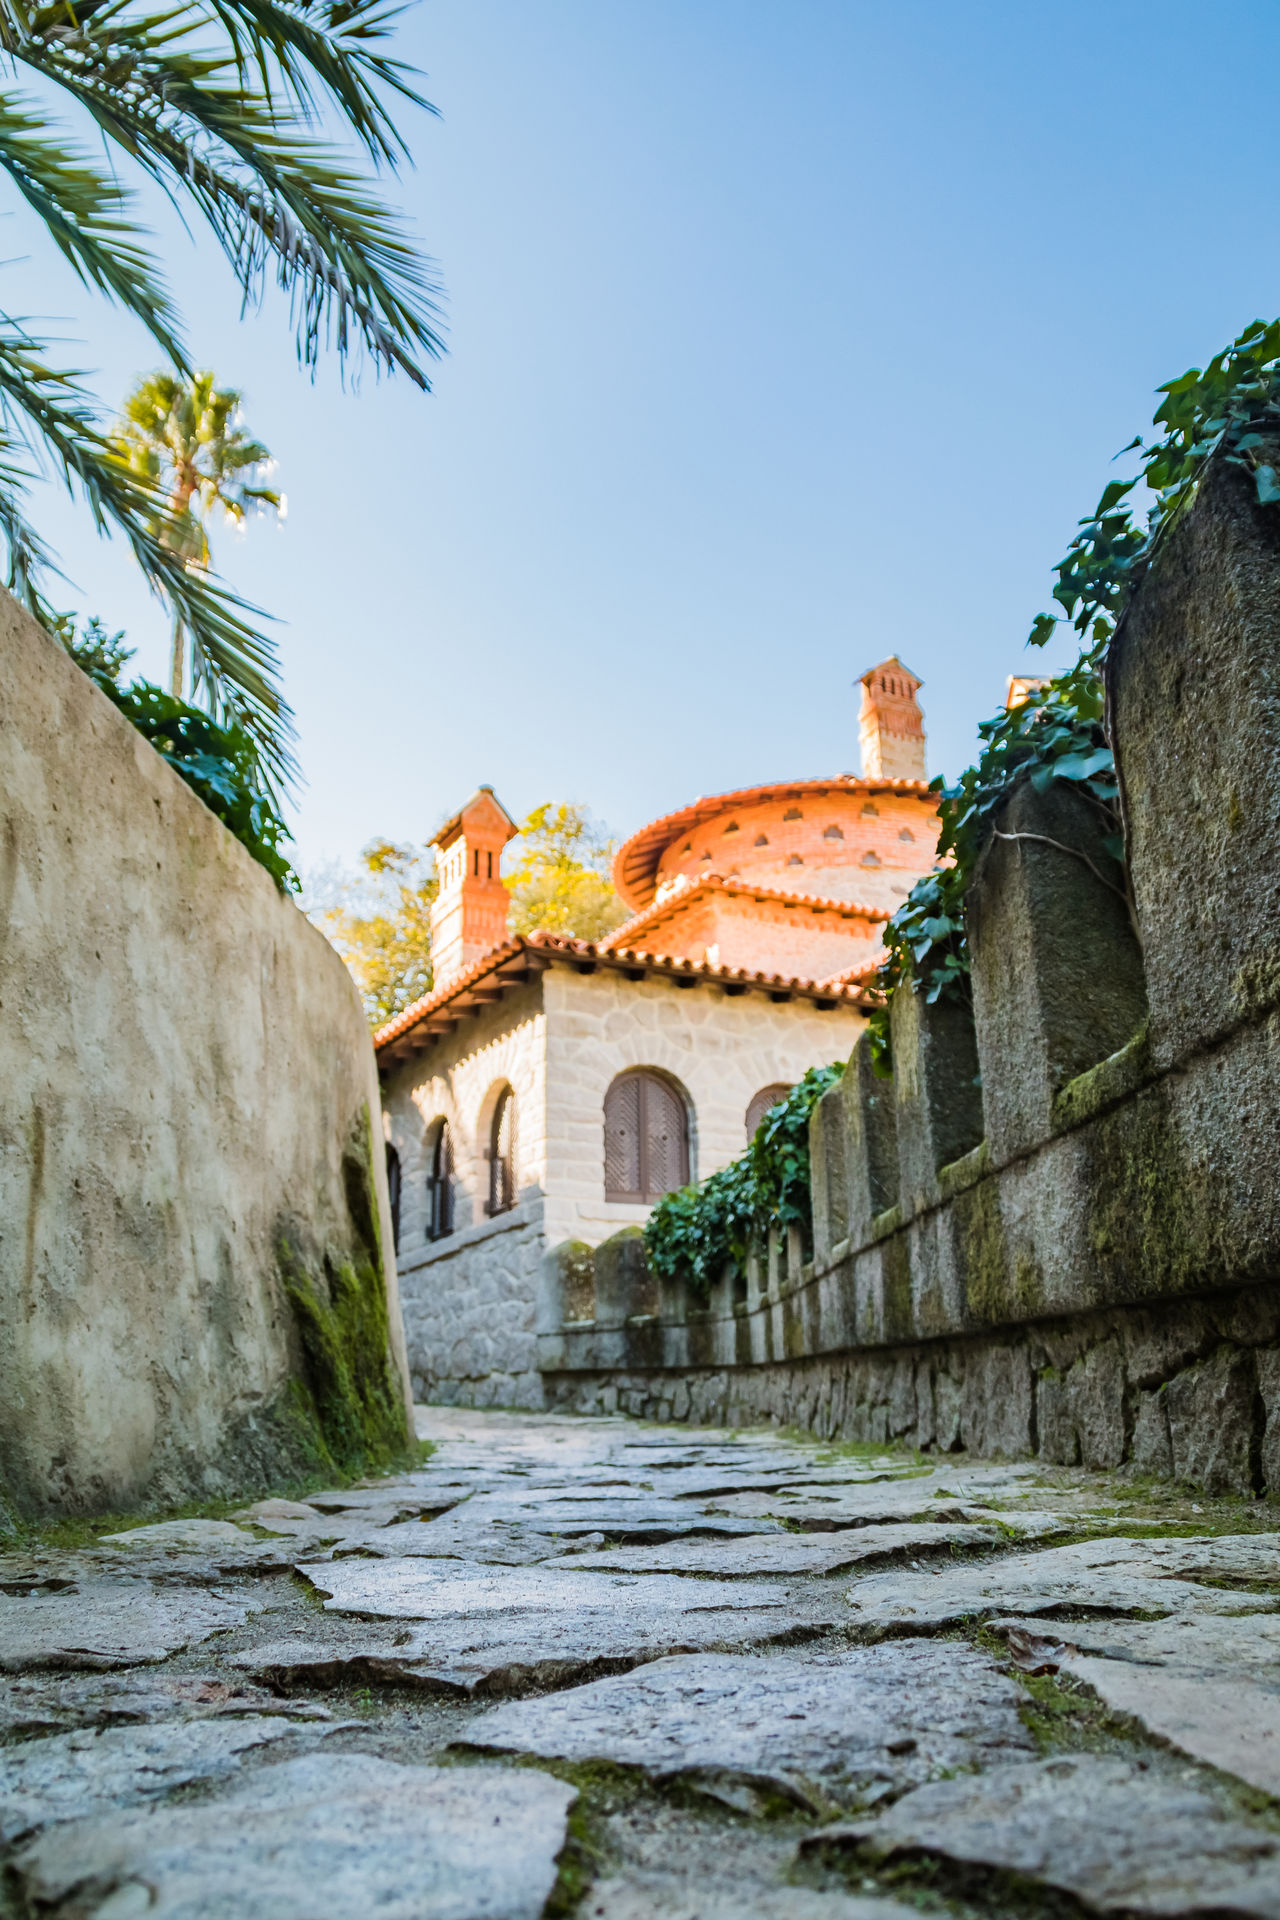 Ancient Ancient Architecture Architecture Beauty In Nature Colors Gardens Hiking Historical Building History Majestic Monuments Outdoors Palace Picturesque Ruins Sintra (Portugal) Sky Tourism Town Trails Travel Travel Destinations Tropical Climate